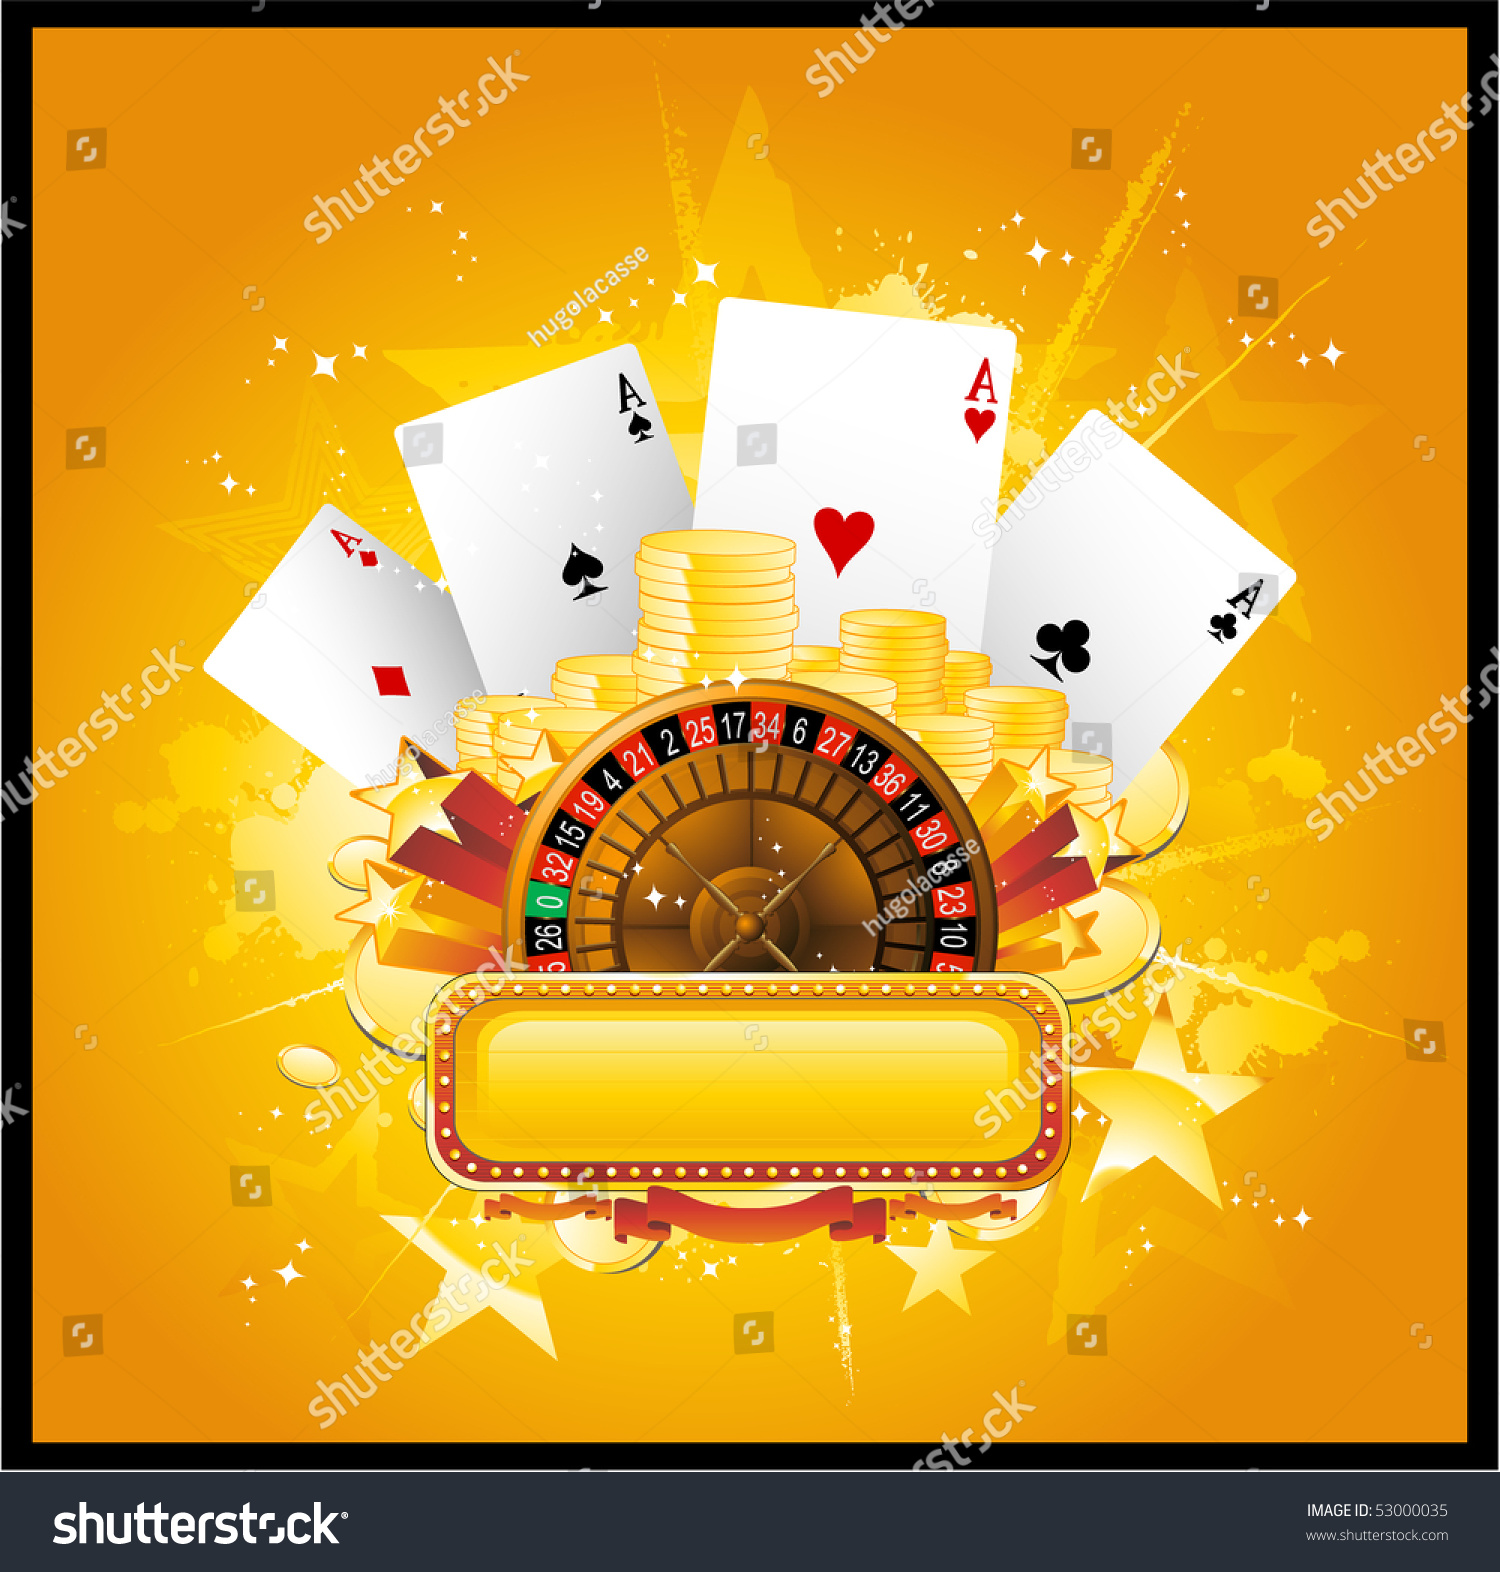 casino background vectors - photo #38